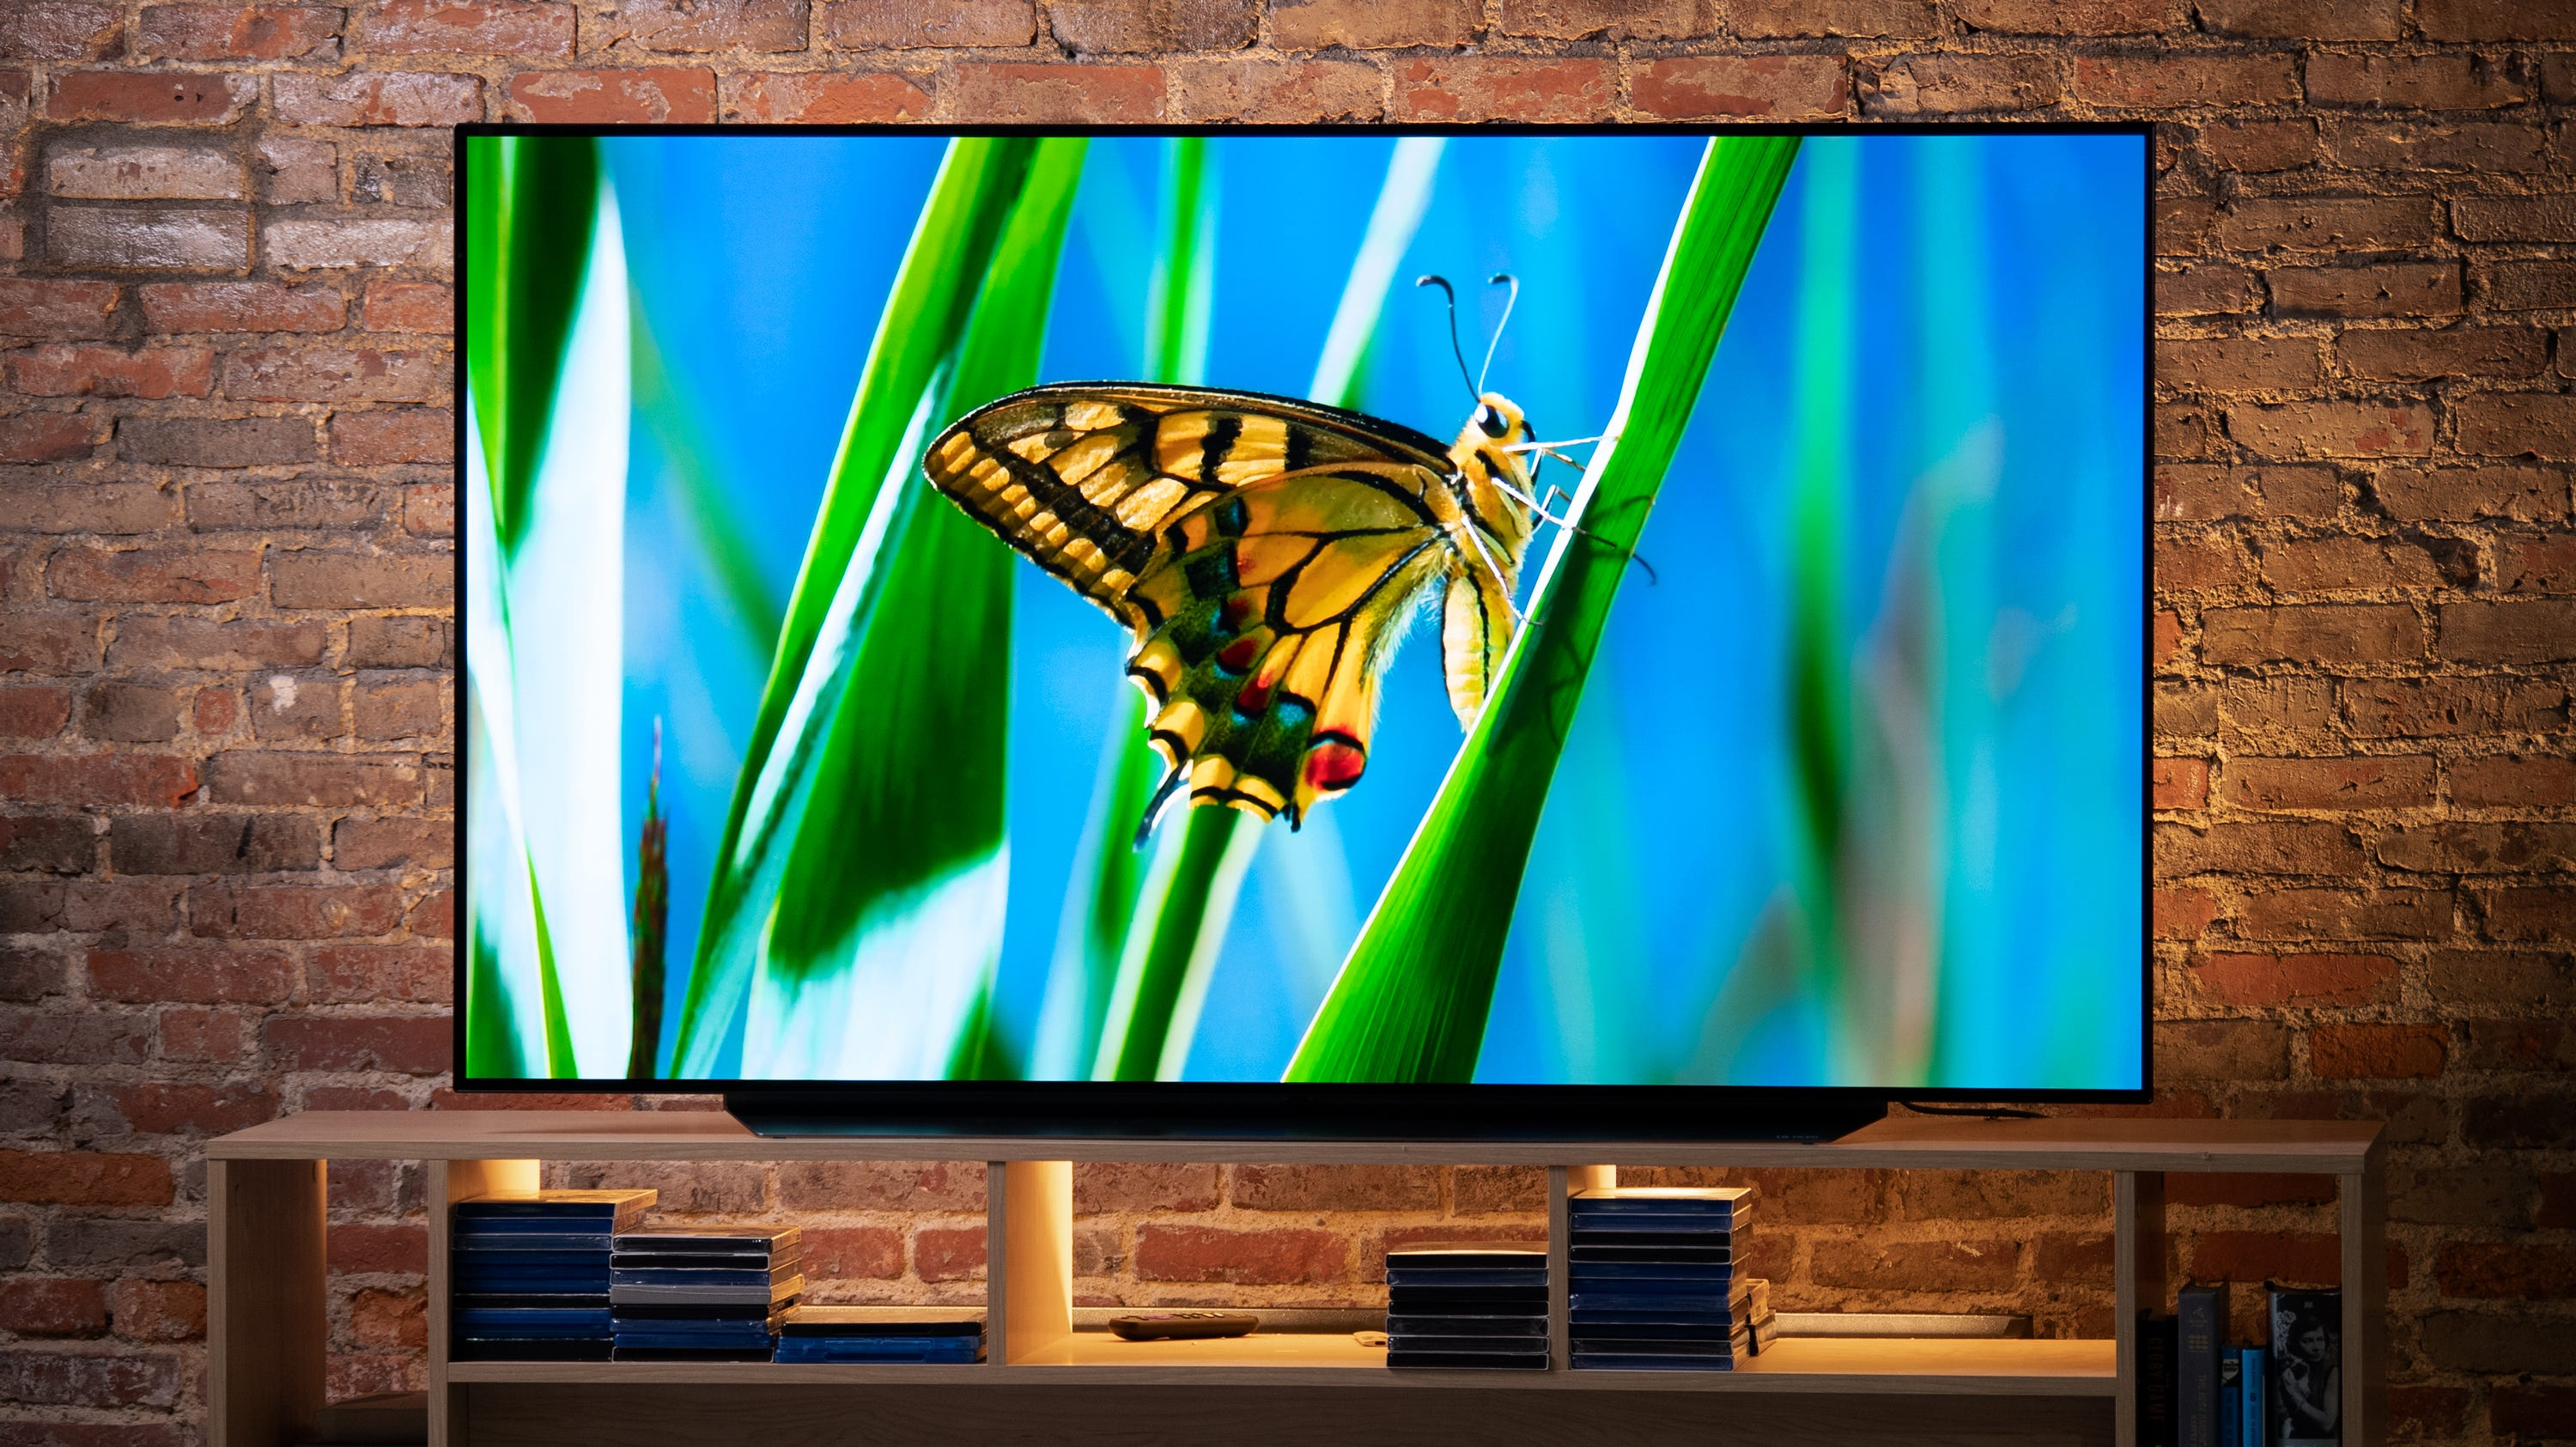 This is the best TV we've seen so far this year